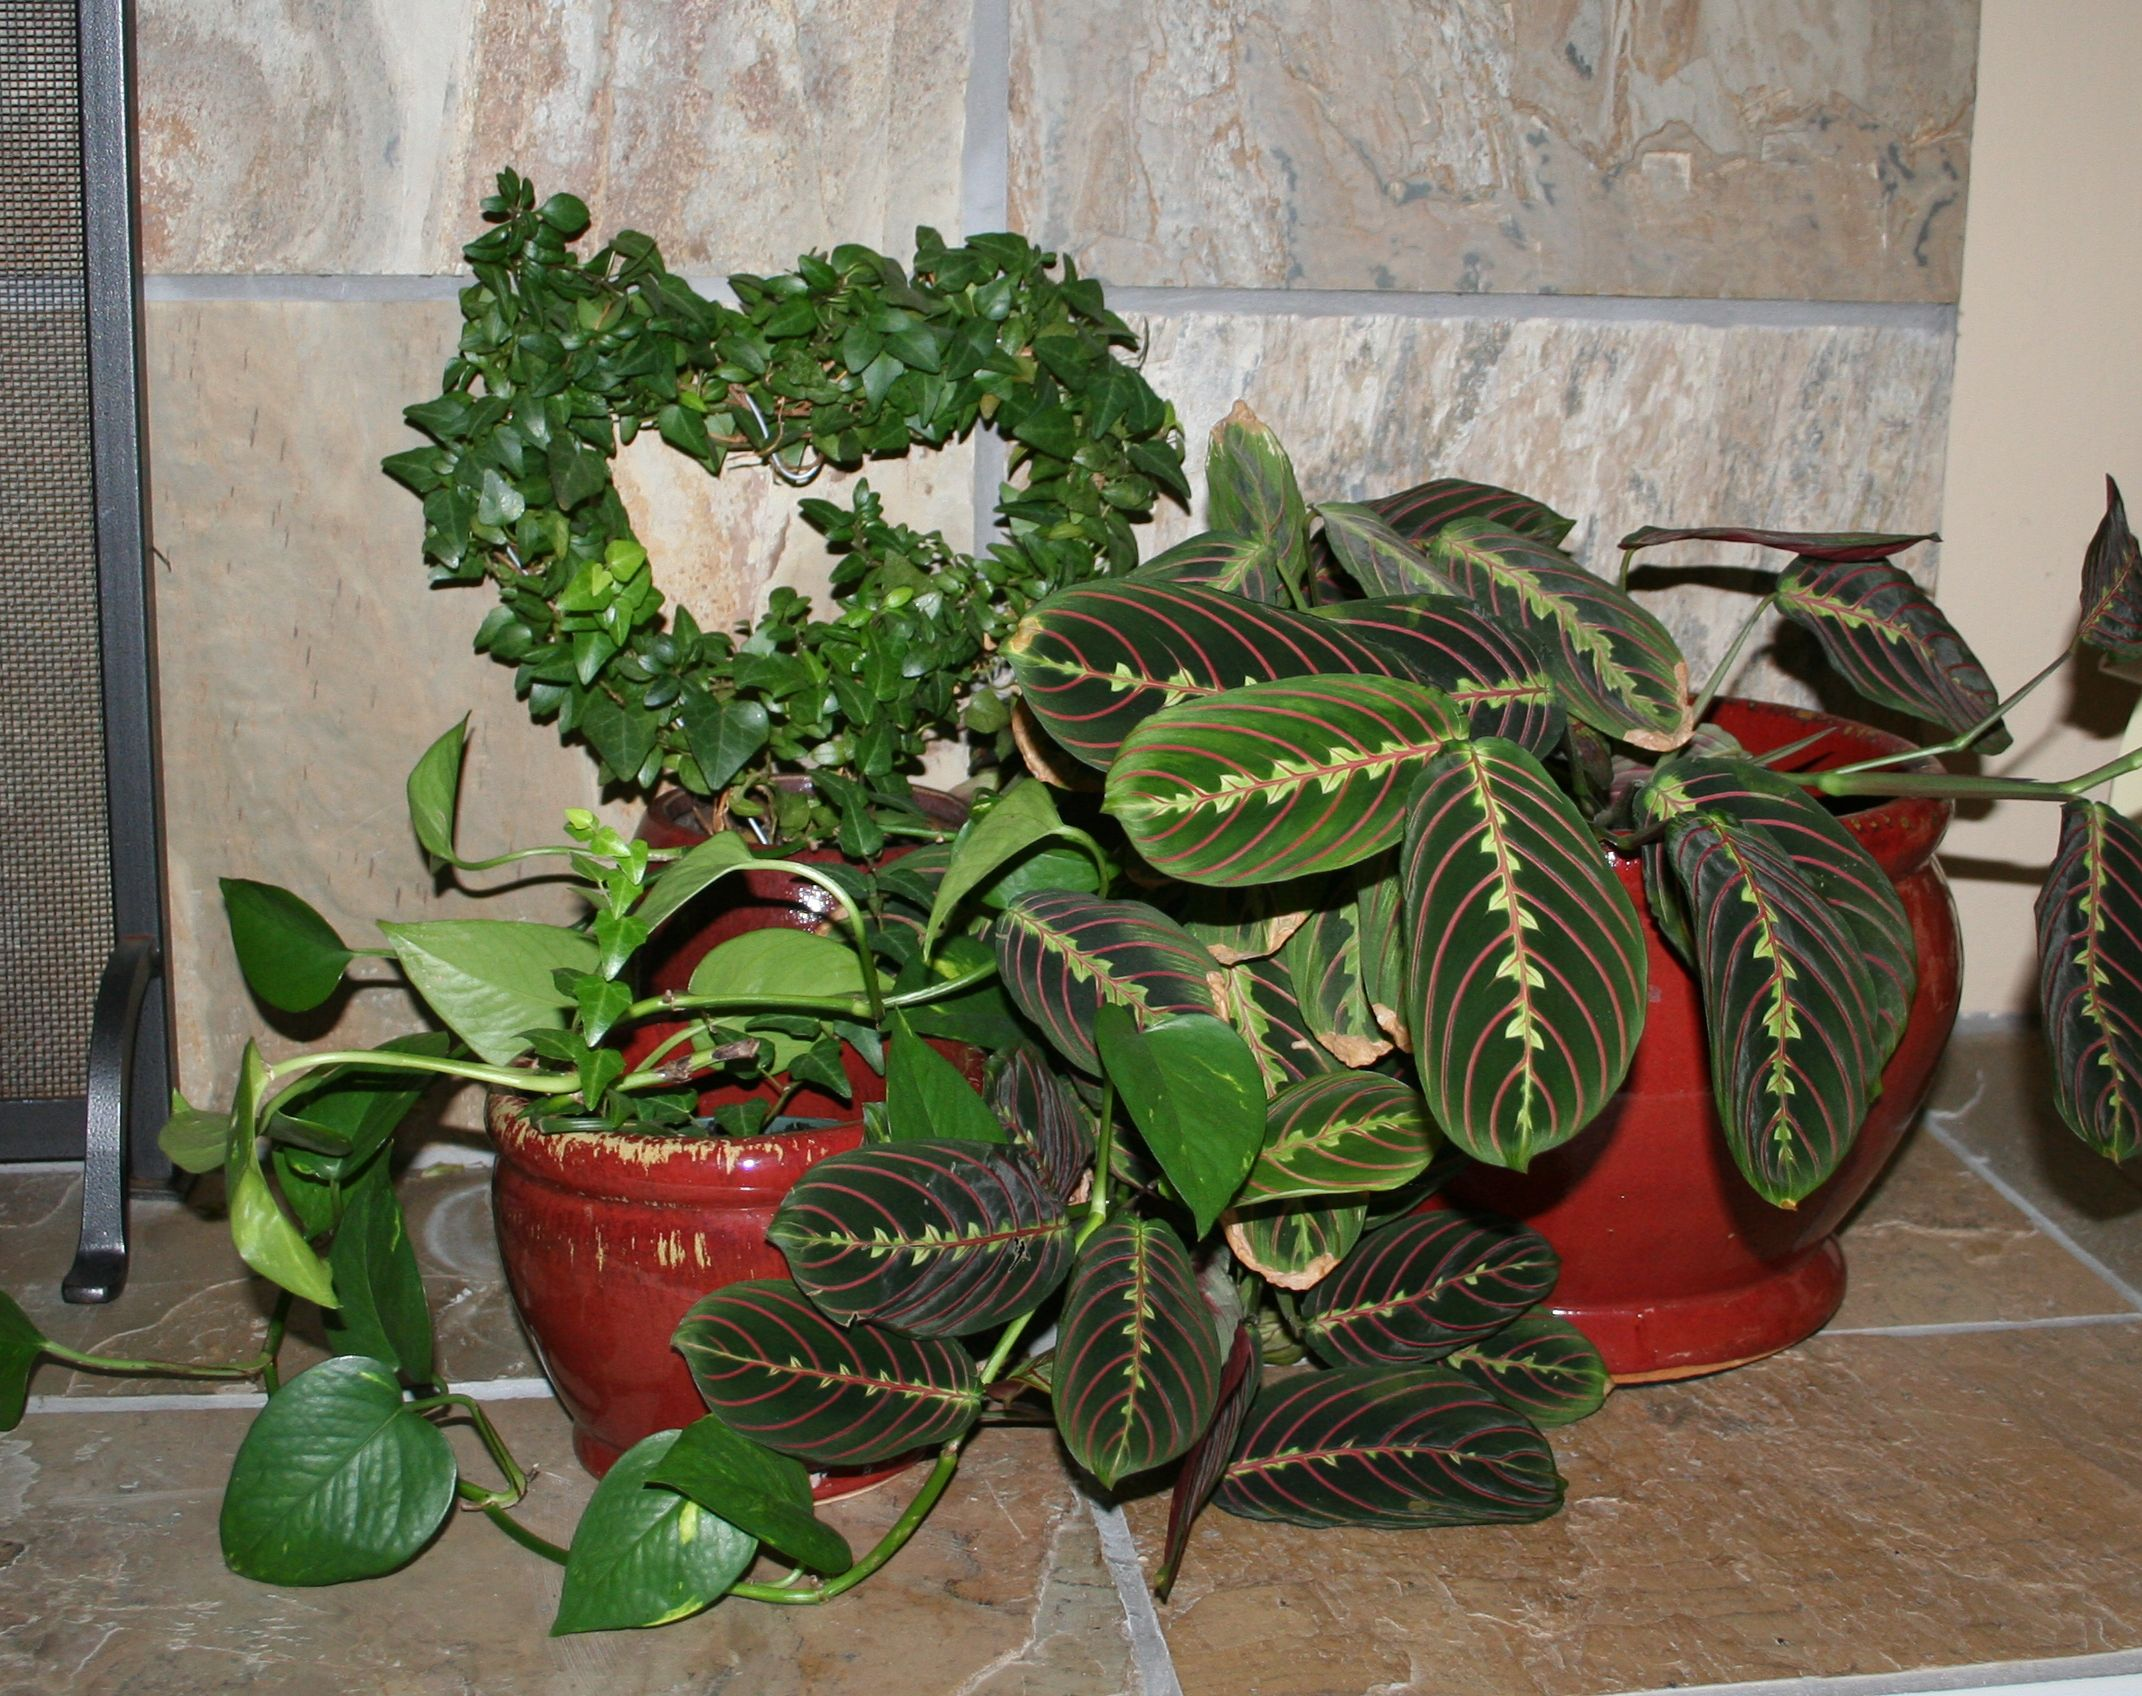 Decorating with house plants livebinders blog for Plant decorations home